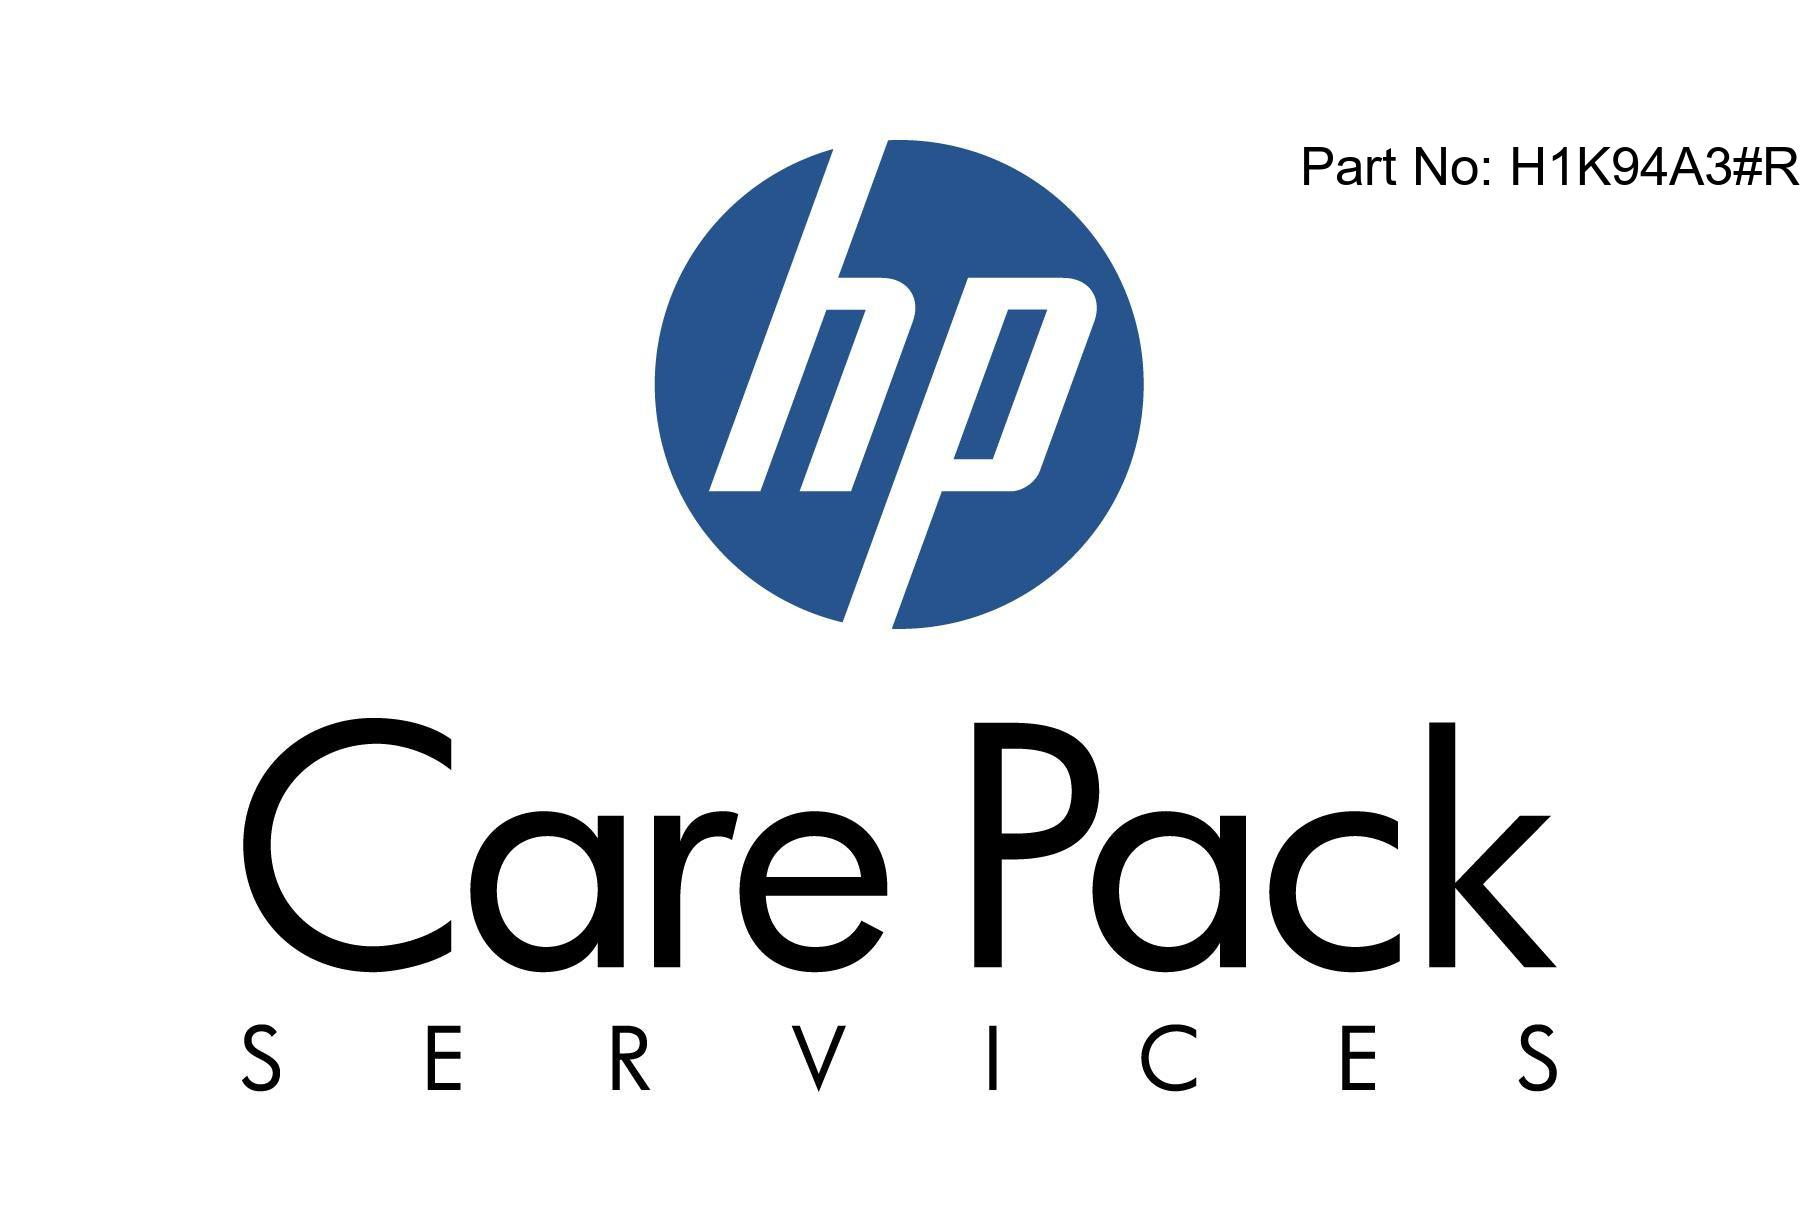 Proactive Care Call-To-Repair Service - Technical support - for VMware vSphere 2.x Enterprise Plus Edition / HPE Insight Control - 1 processor - OEM - phone consulting - 3 years - 24x7 - response time: 2 h